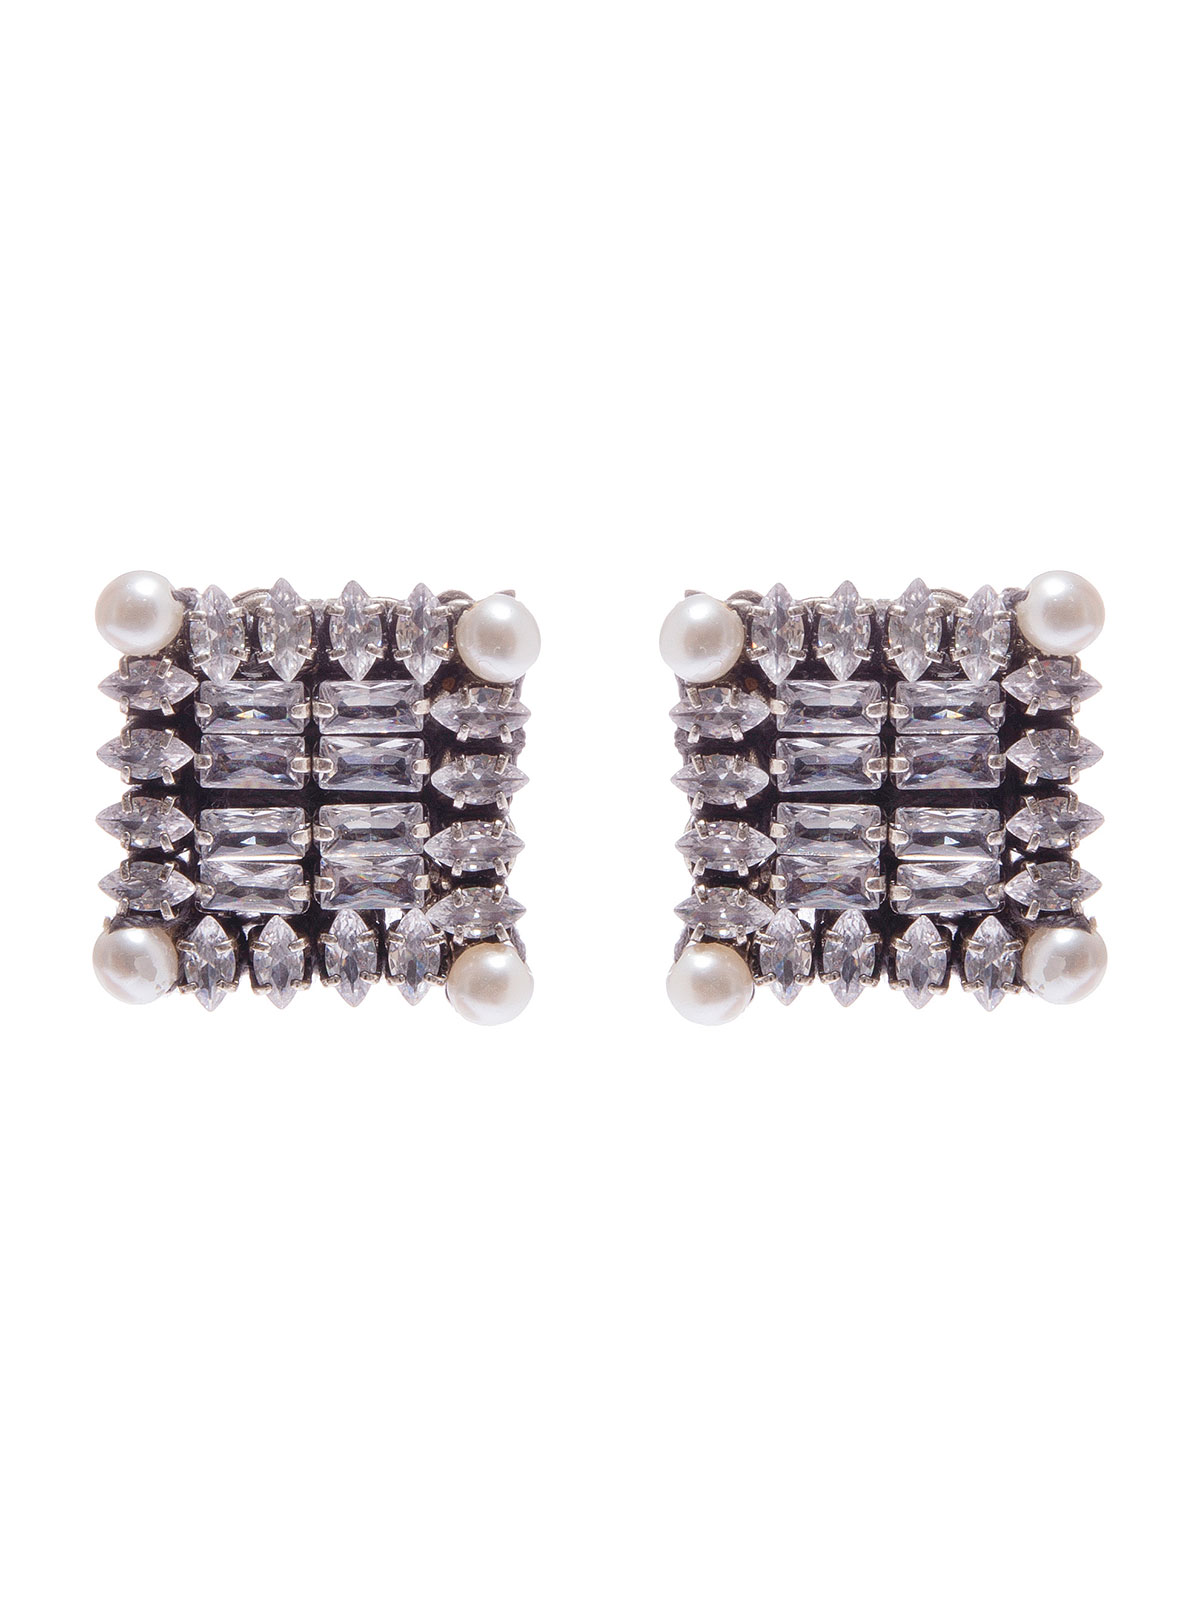 Square crystal earrings embellished with pearls